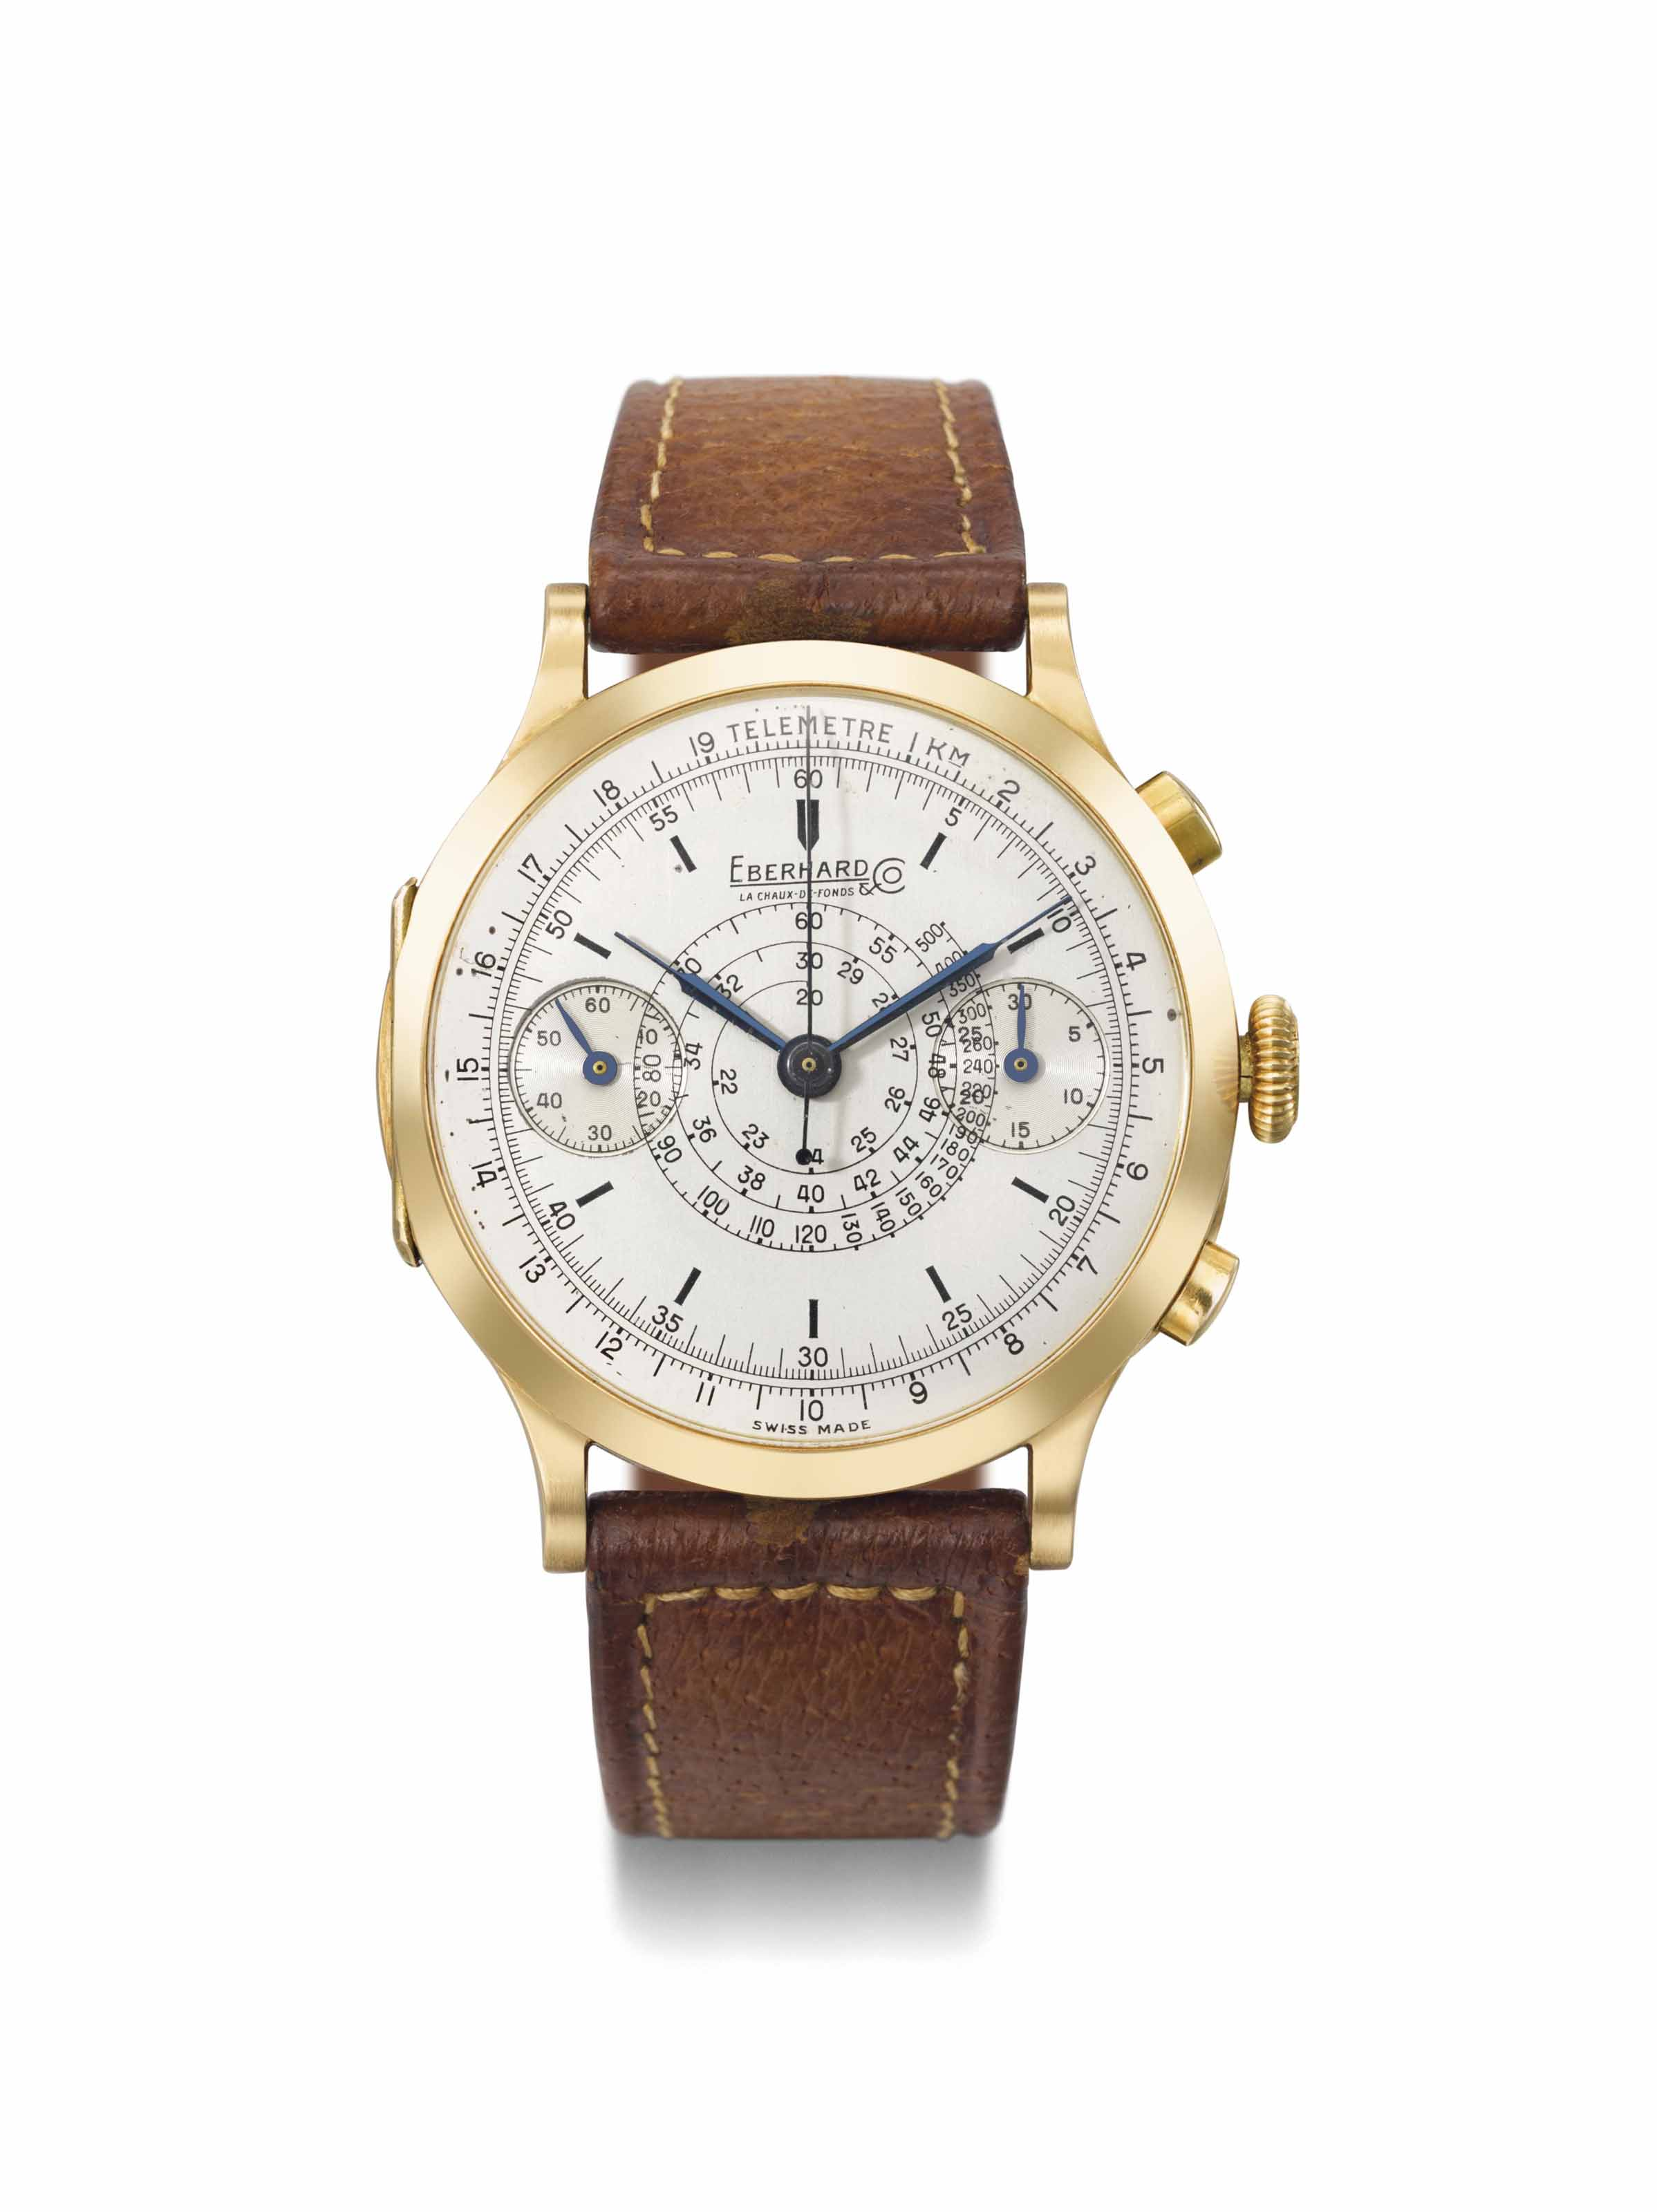 Eberhard. A large and attractive 18K gold hinged chronograph wristwatch with two-tone silvered dial and patented split time mechanism